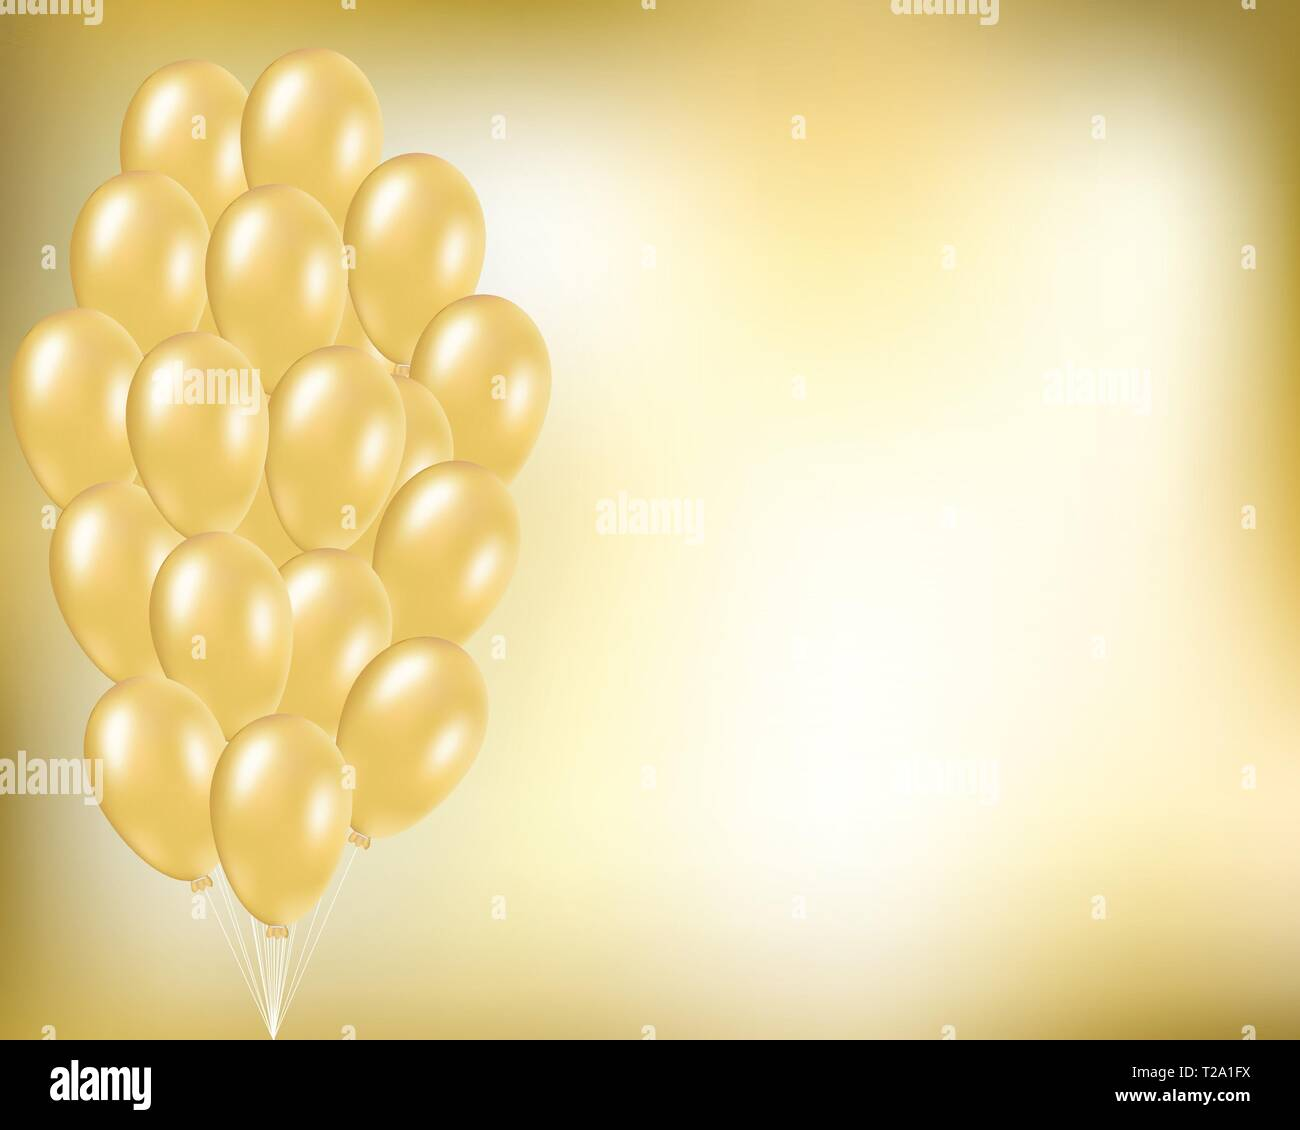 https www alamy com gold festive vector background with golden balloons in bunch elegant concept for party birthday anniversary holidays wedding invitation card po image242395214 html